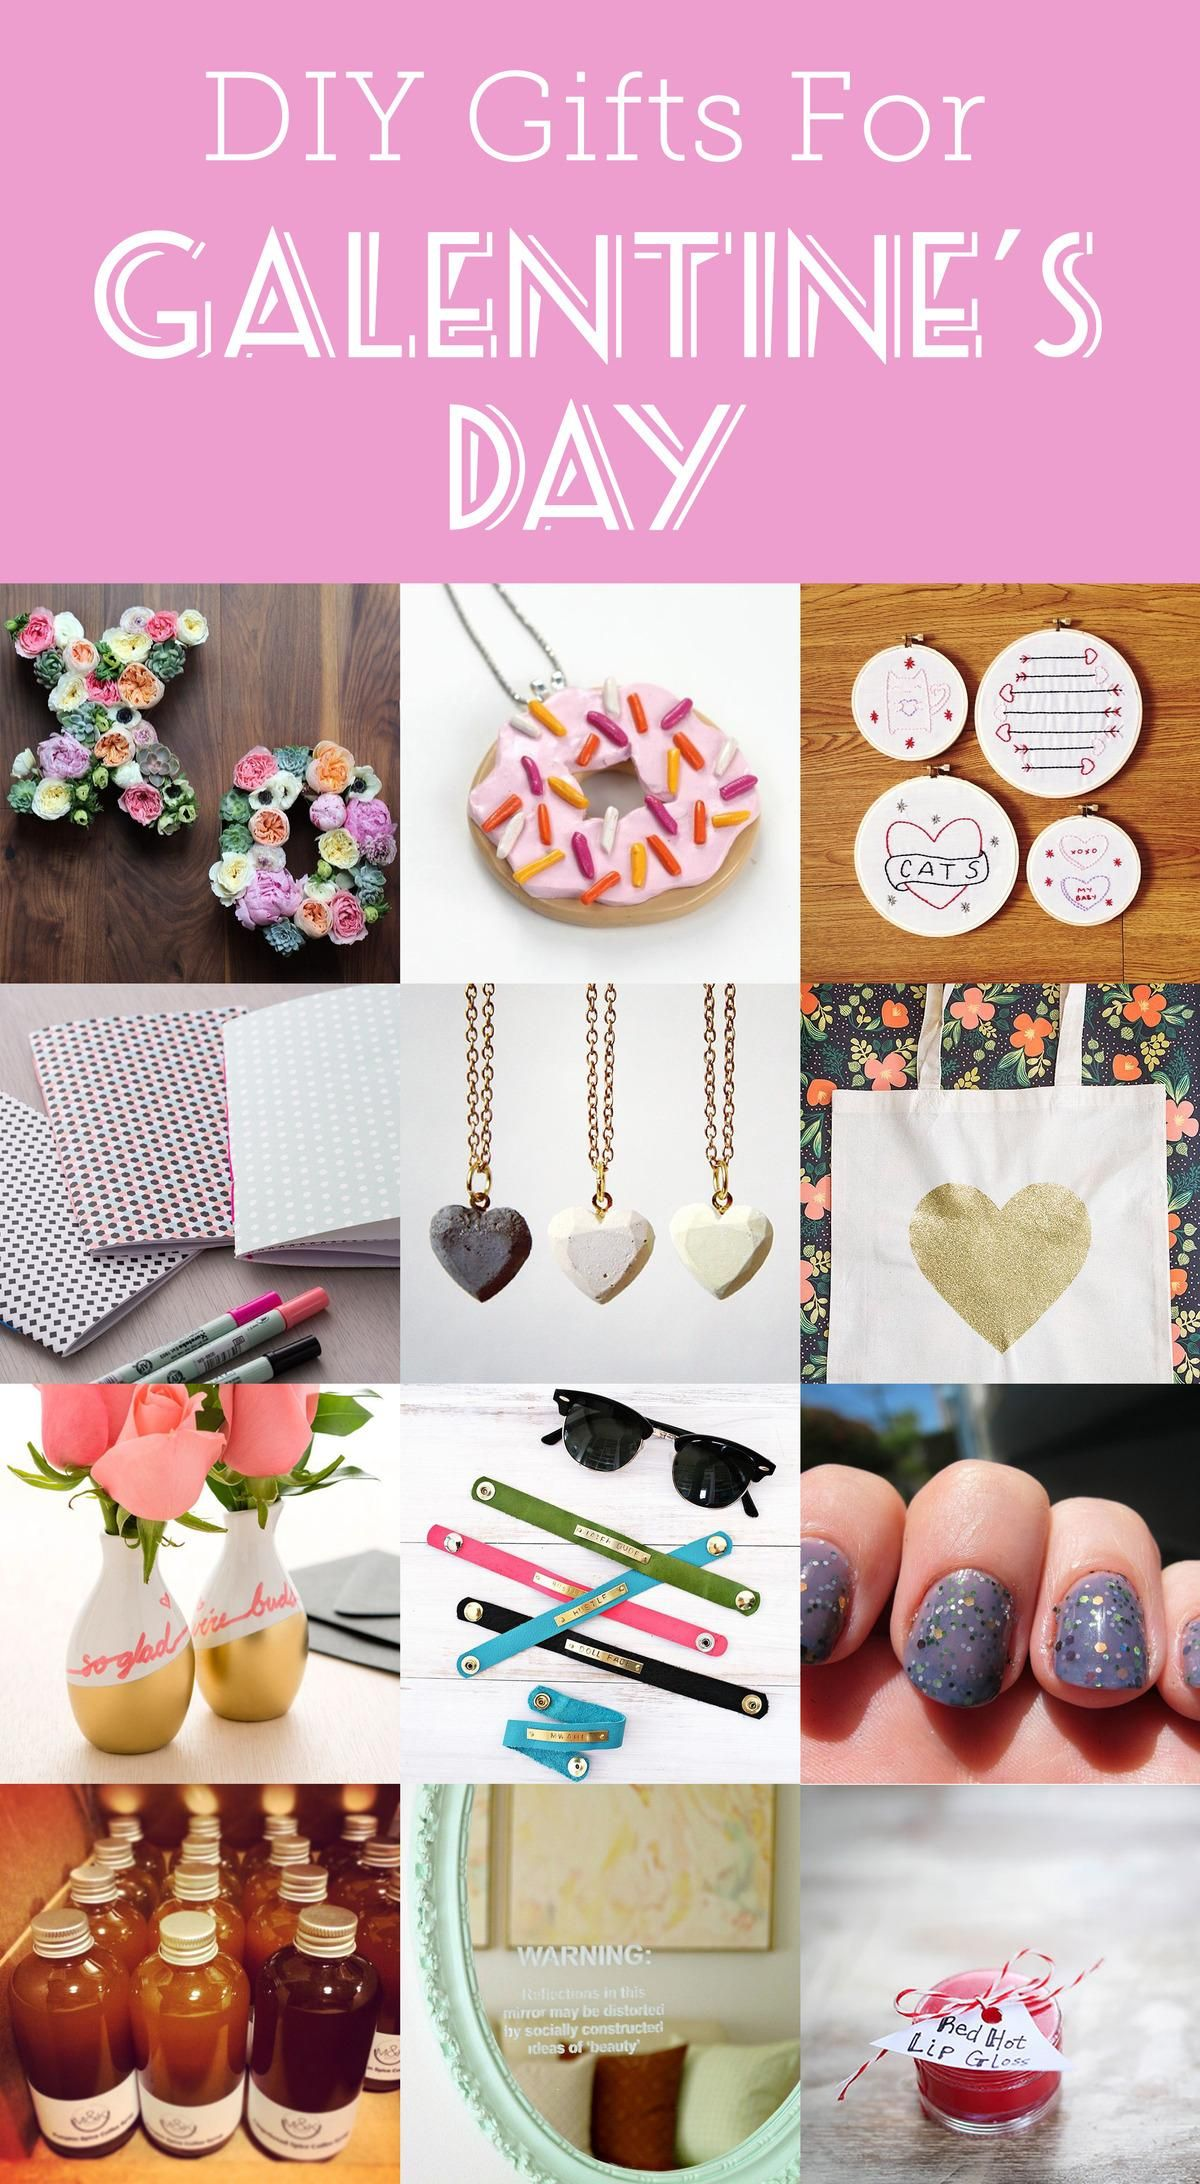 14 DIY gifts to make for Galentine's Day | Friendship ...